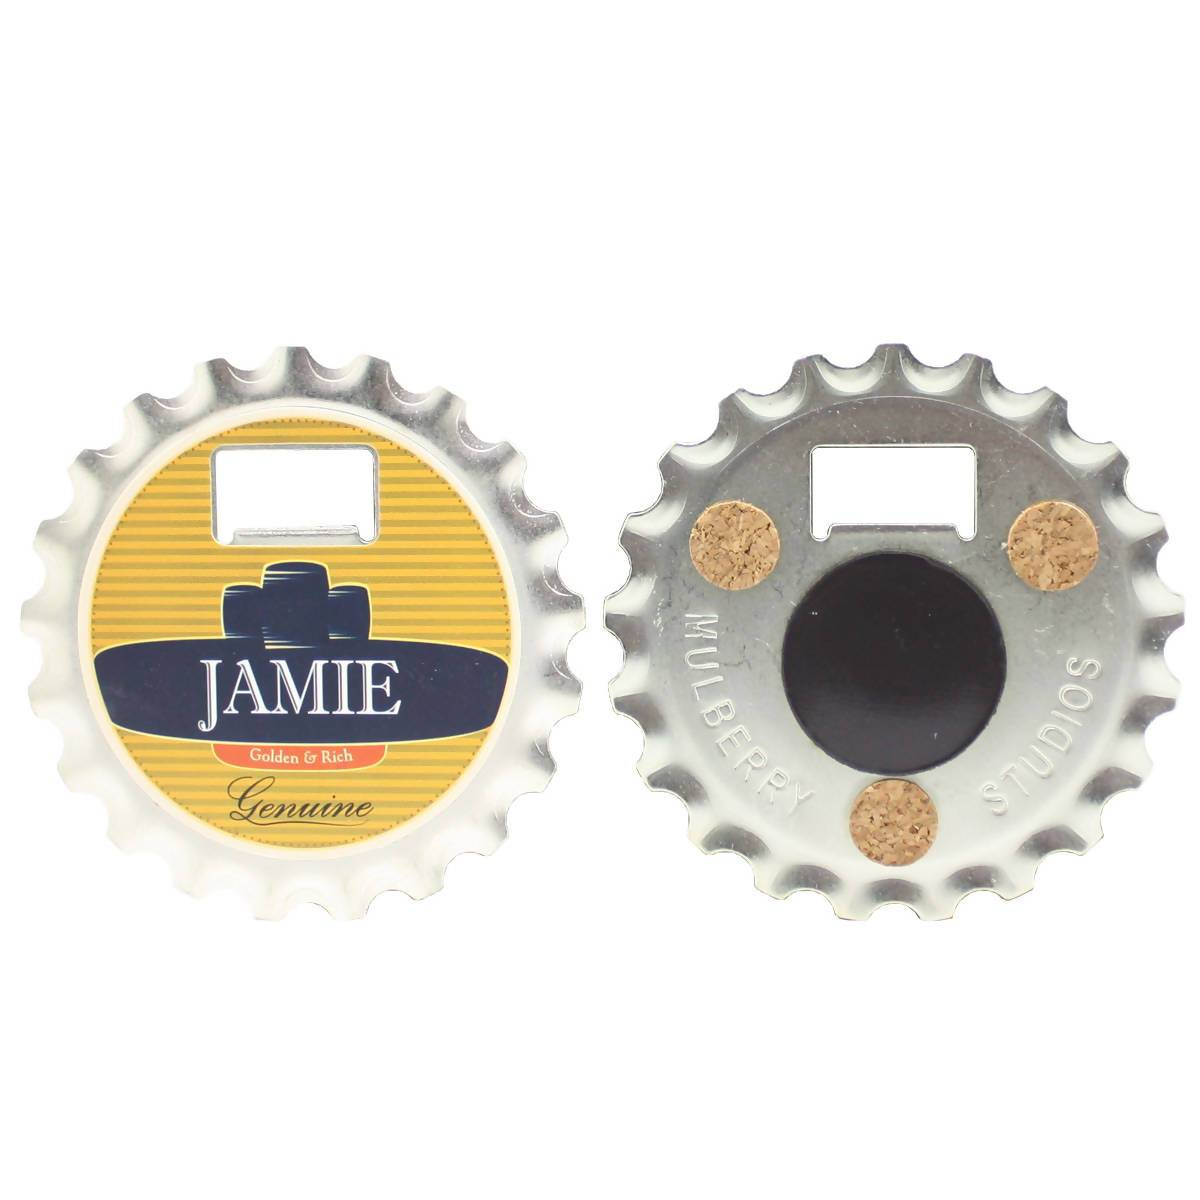 BOTTLE BUSTER - Best Bottle Opener : Jamie - Bottle Openers - La Belle Collection - Naiise